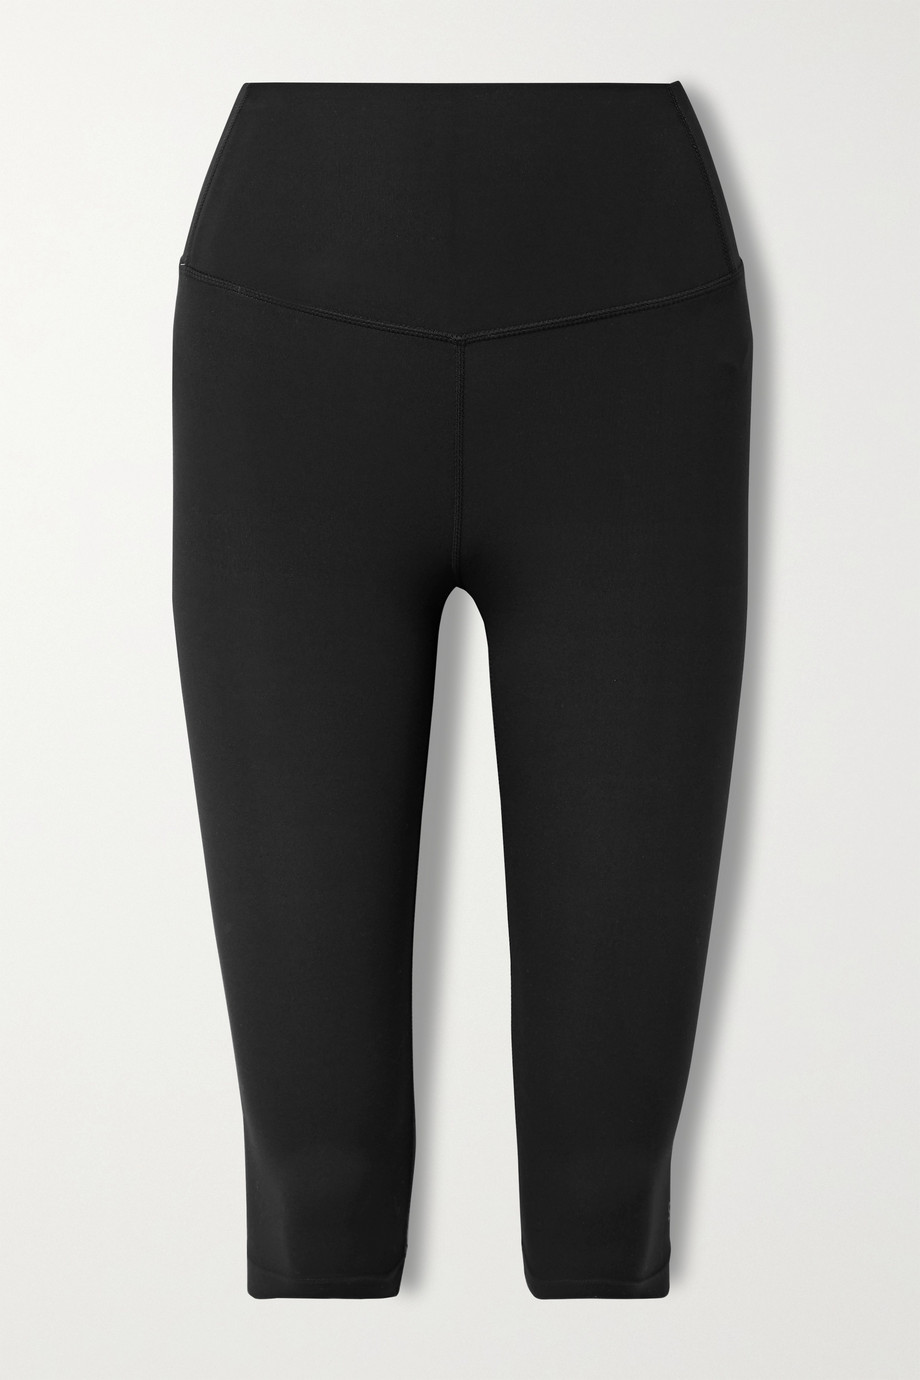 Splits59 Airweight cropped stretch leggings